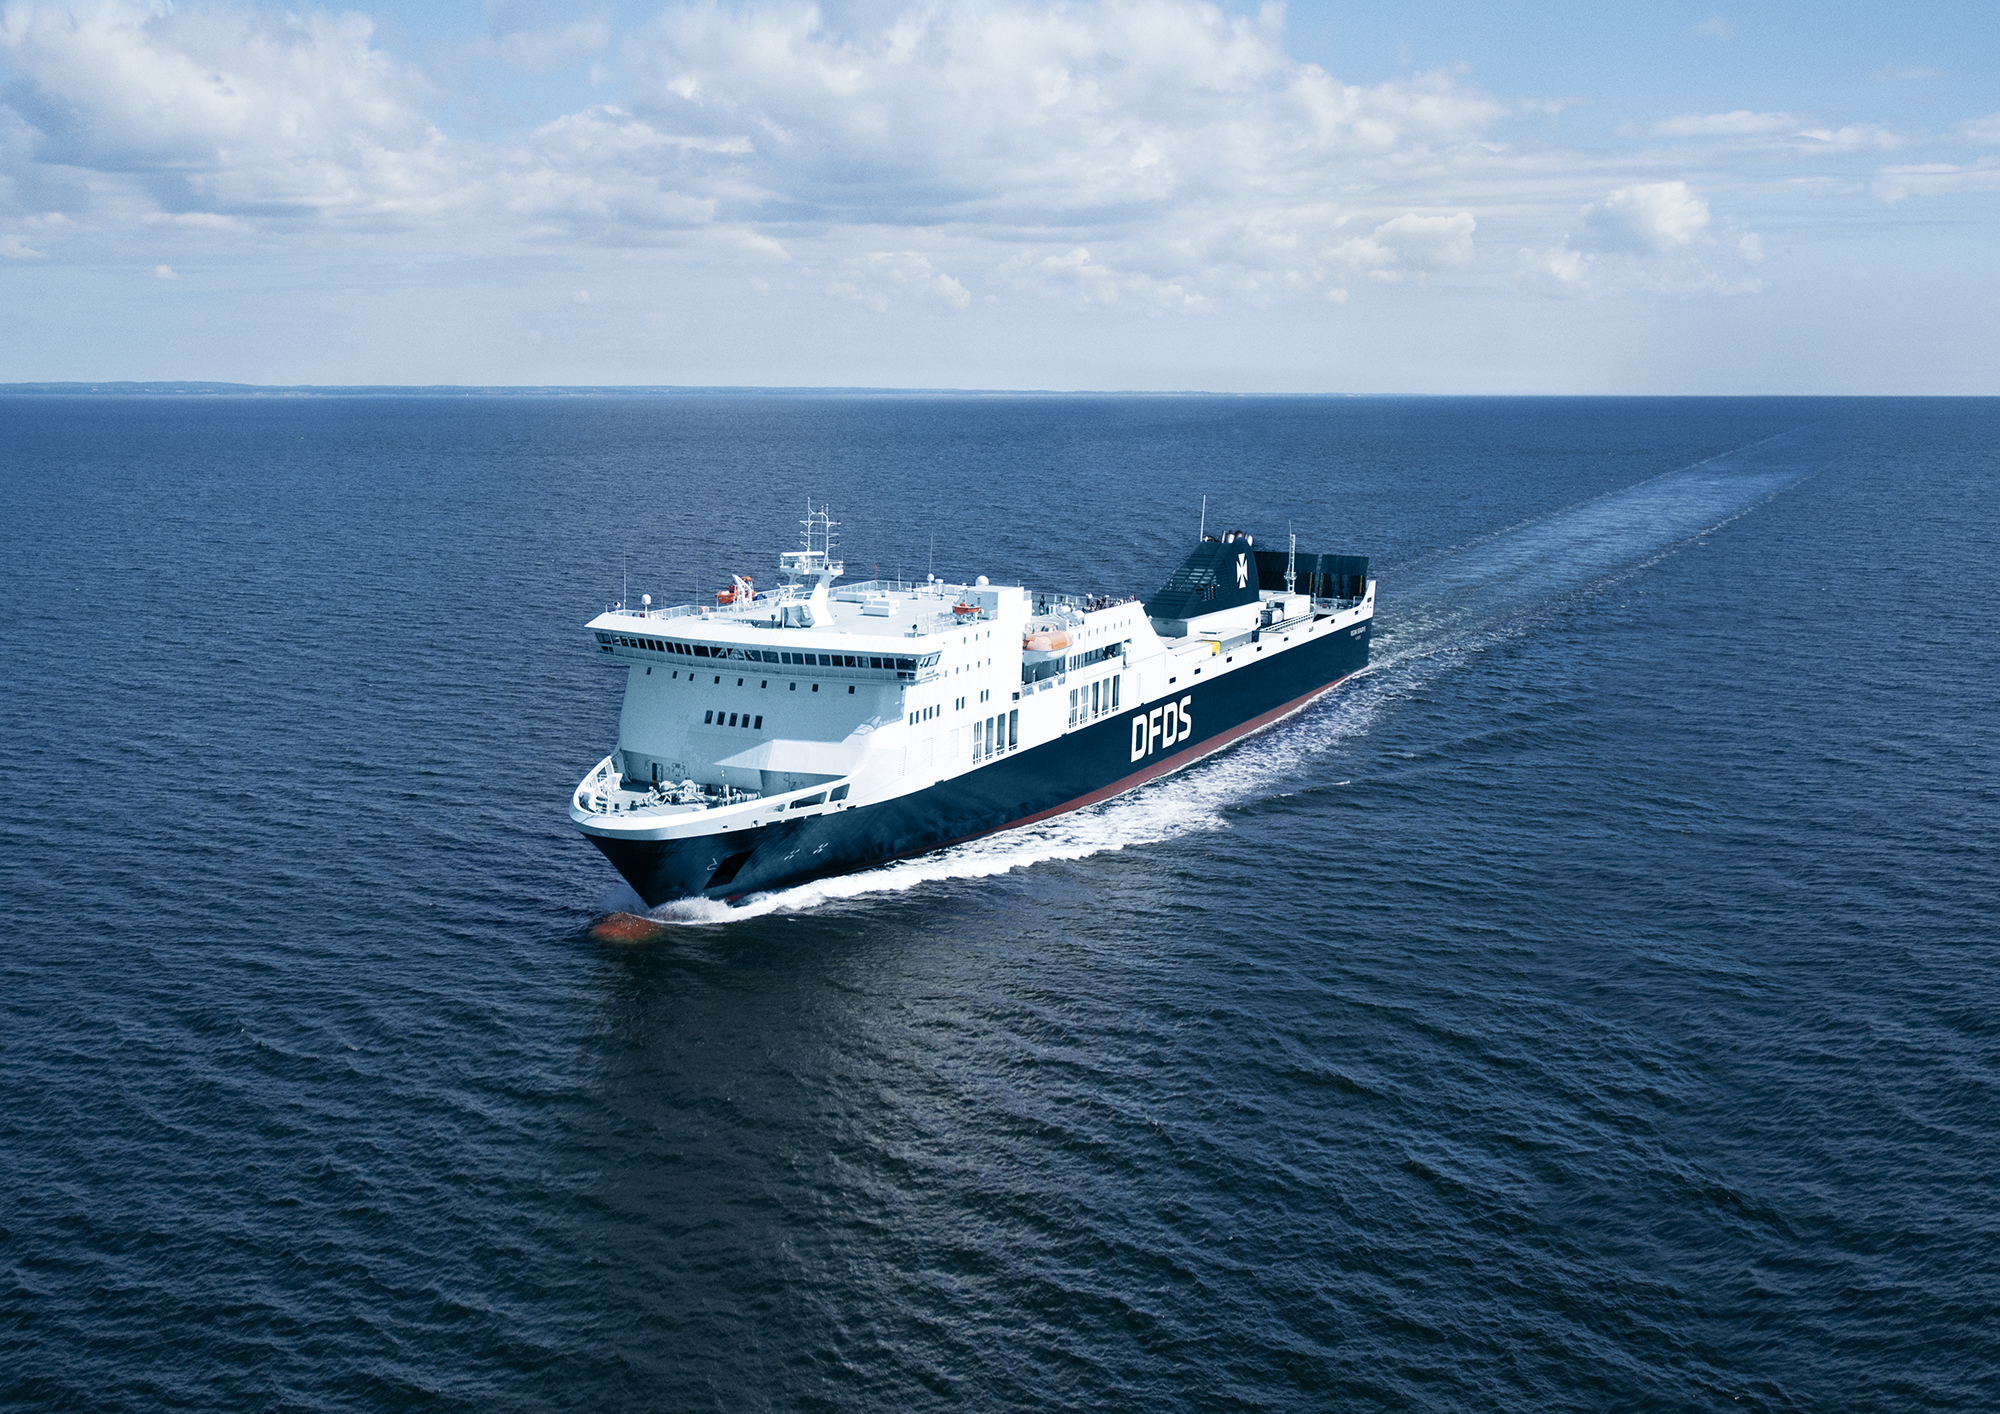 DFDS vessel on the Rosslare Dunkerque route